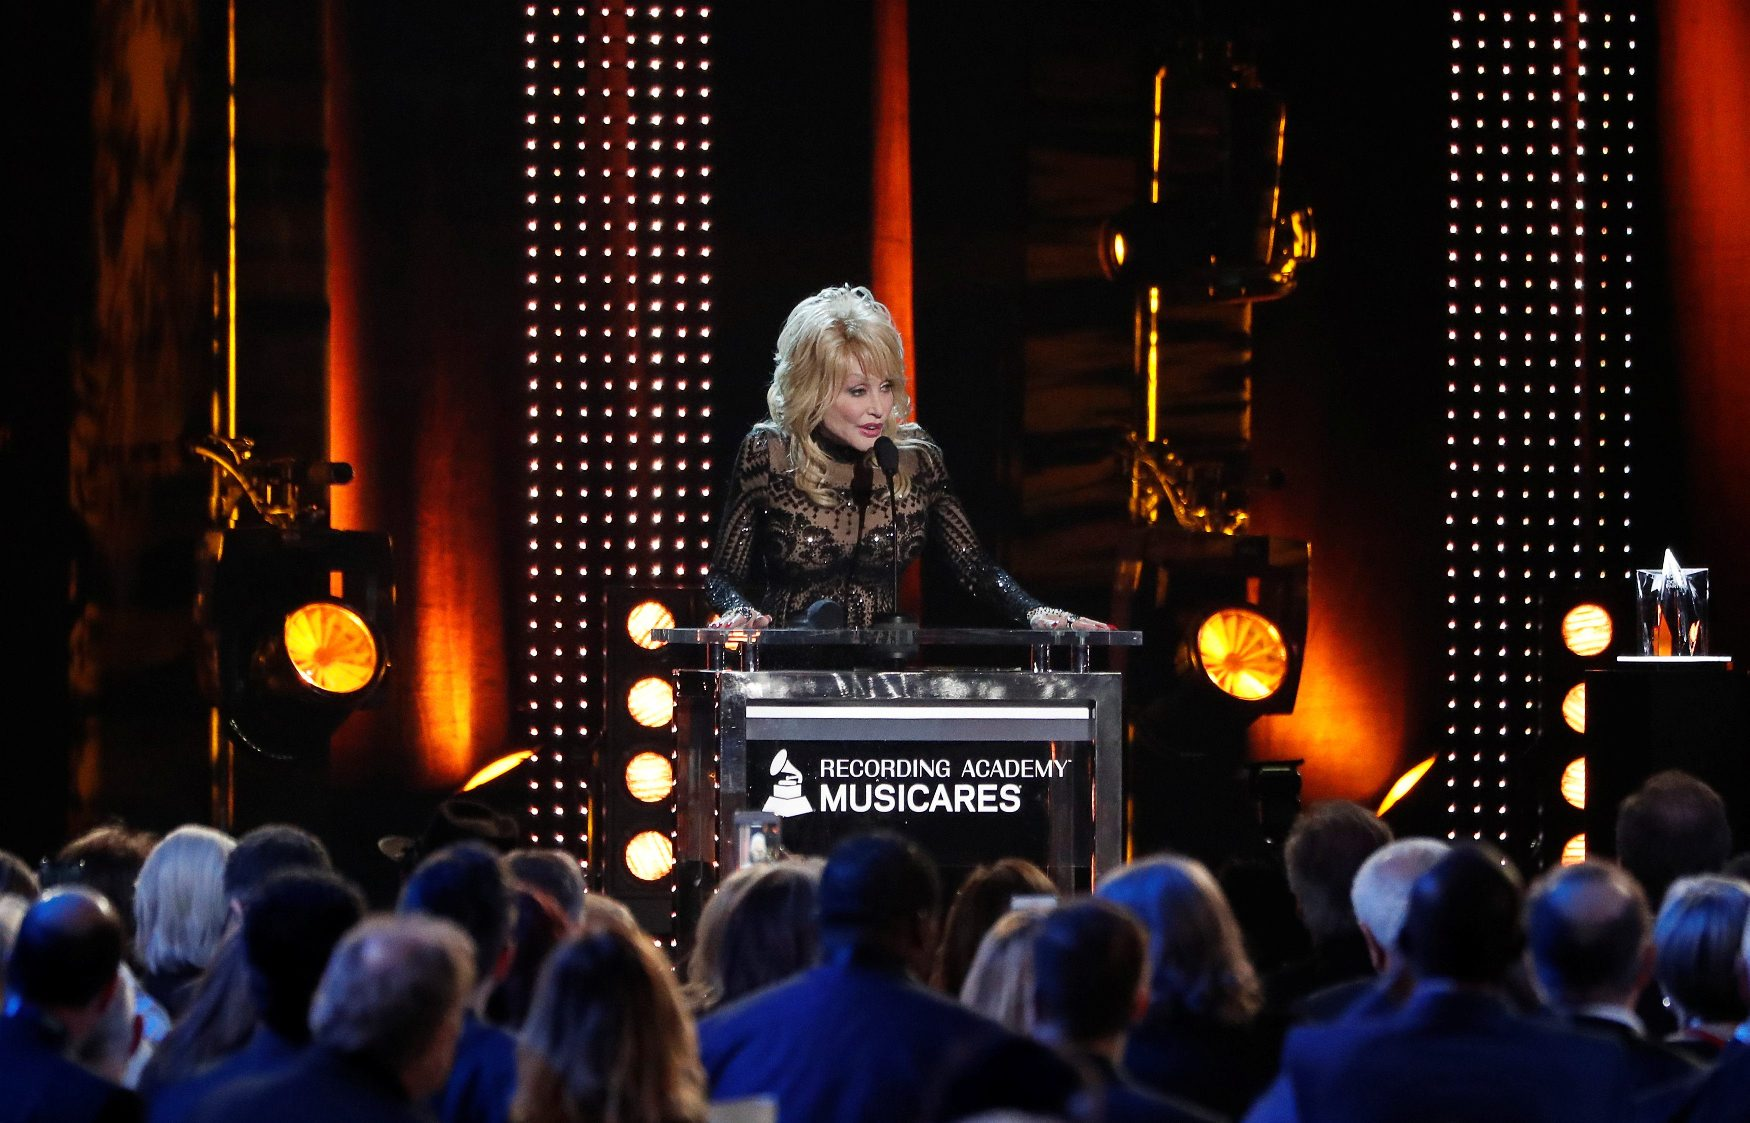 2019-02-09T073502Z_1267032485_RC1AC33C4FF0_RTRMADP_3_MUSIC-DOLLY-PARTON